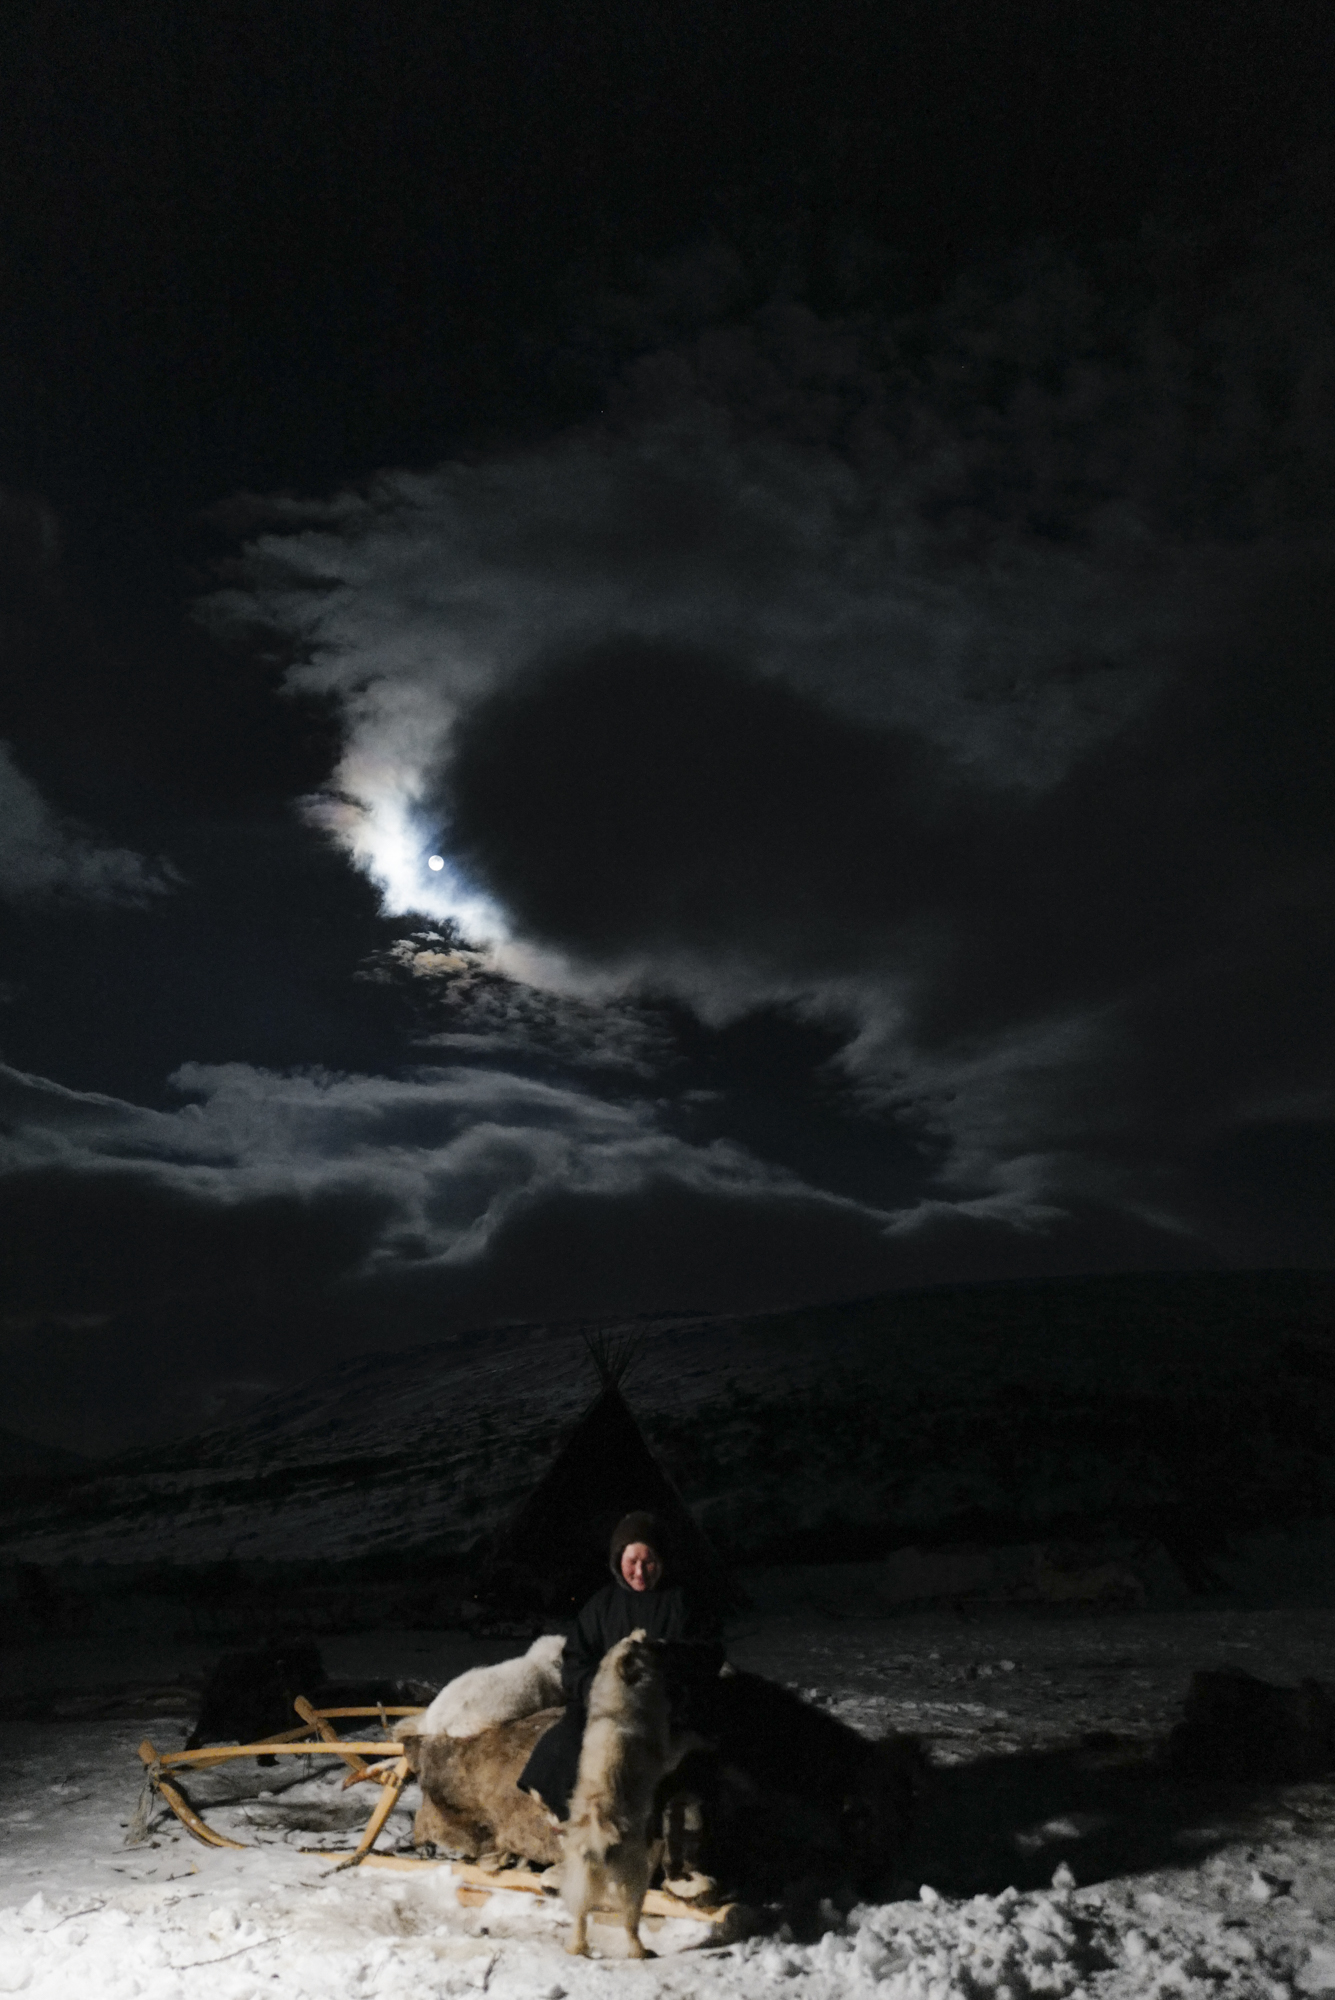 Beautiful full moon night, Aleksander is playing with his dogs after dinner. Photographed with Leica Q2, Siberia, 2019.  ©  Rosalynn Tay.